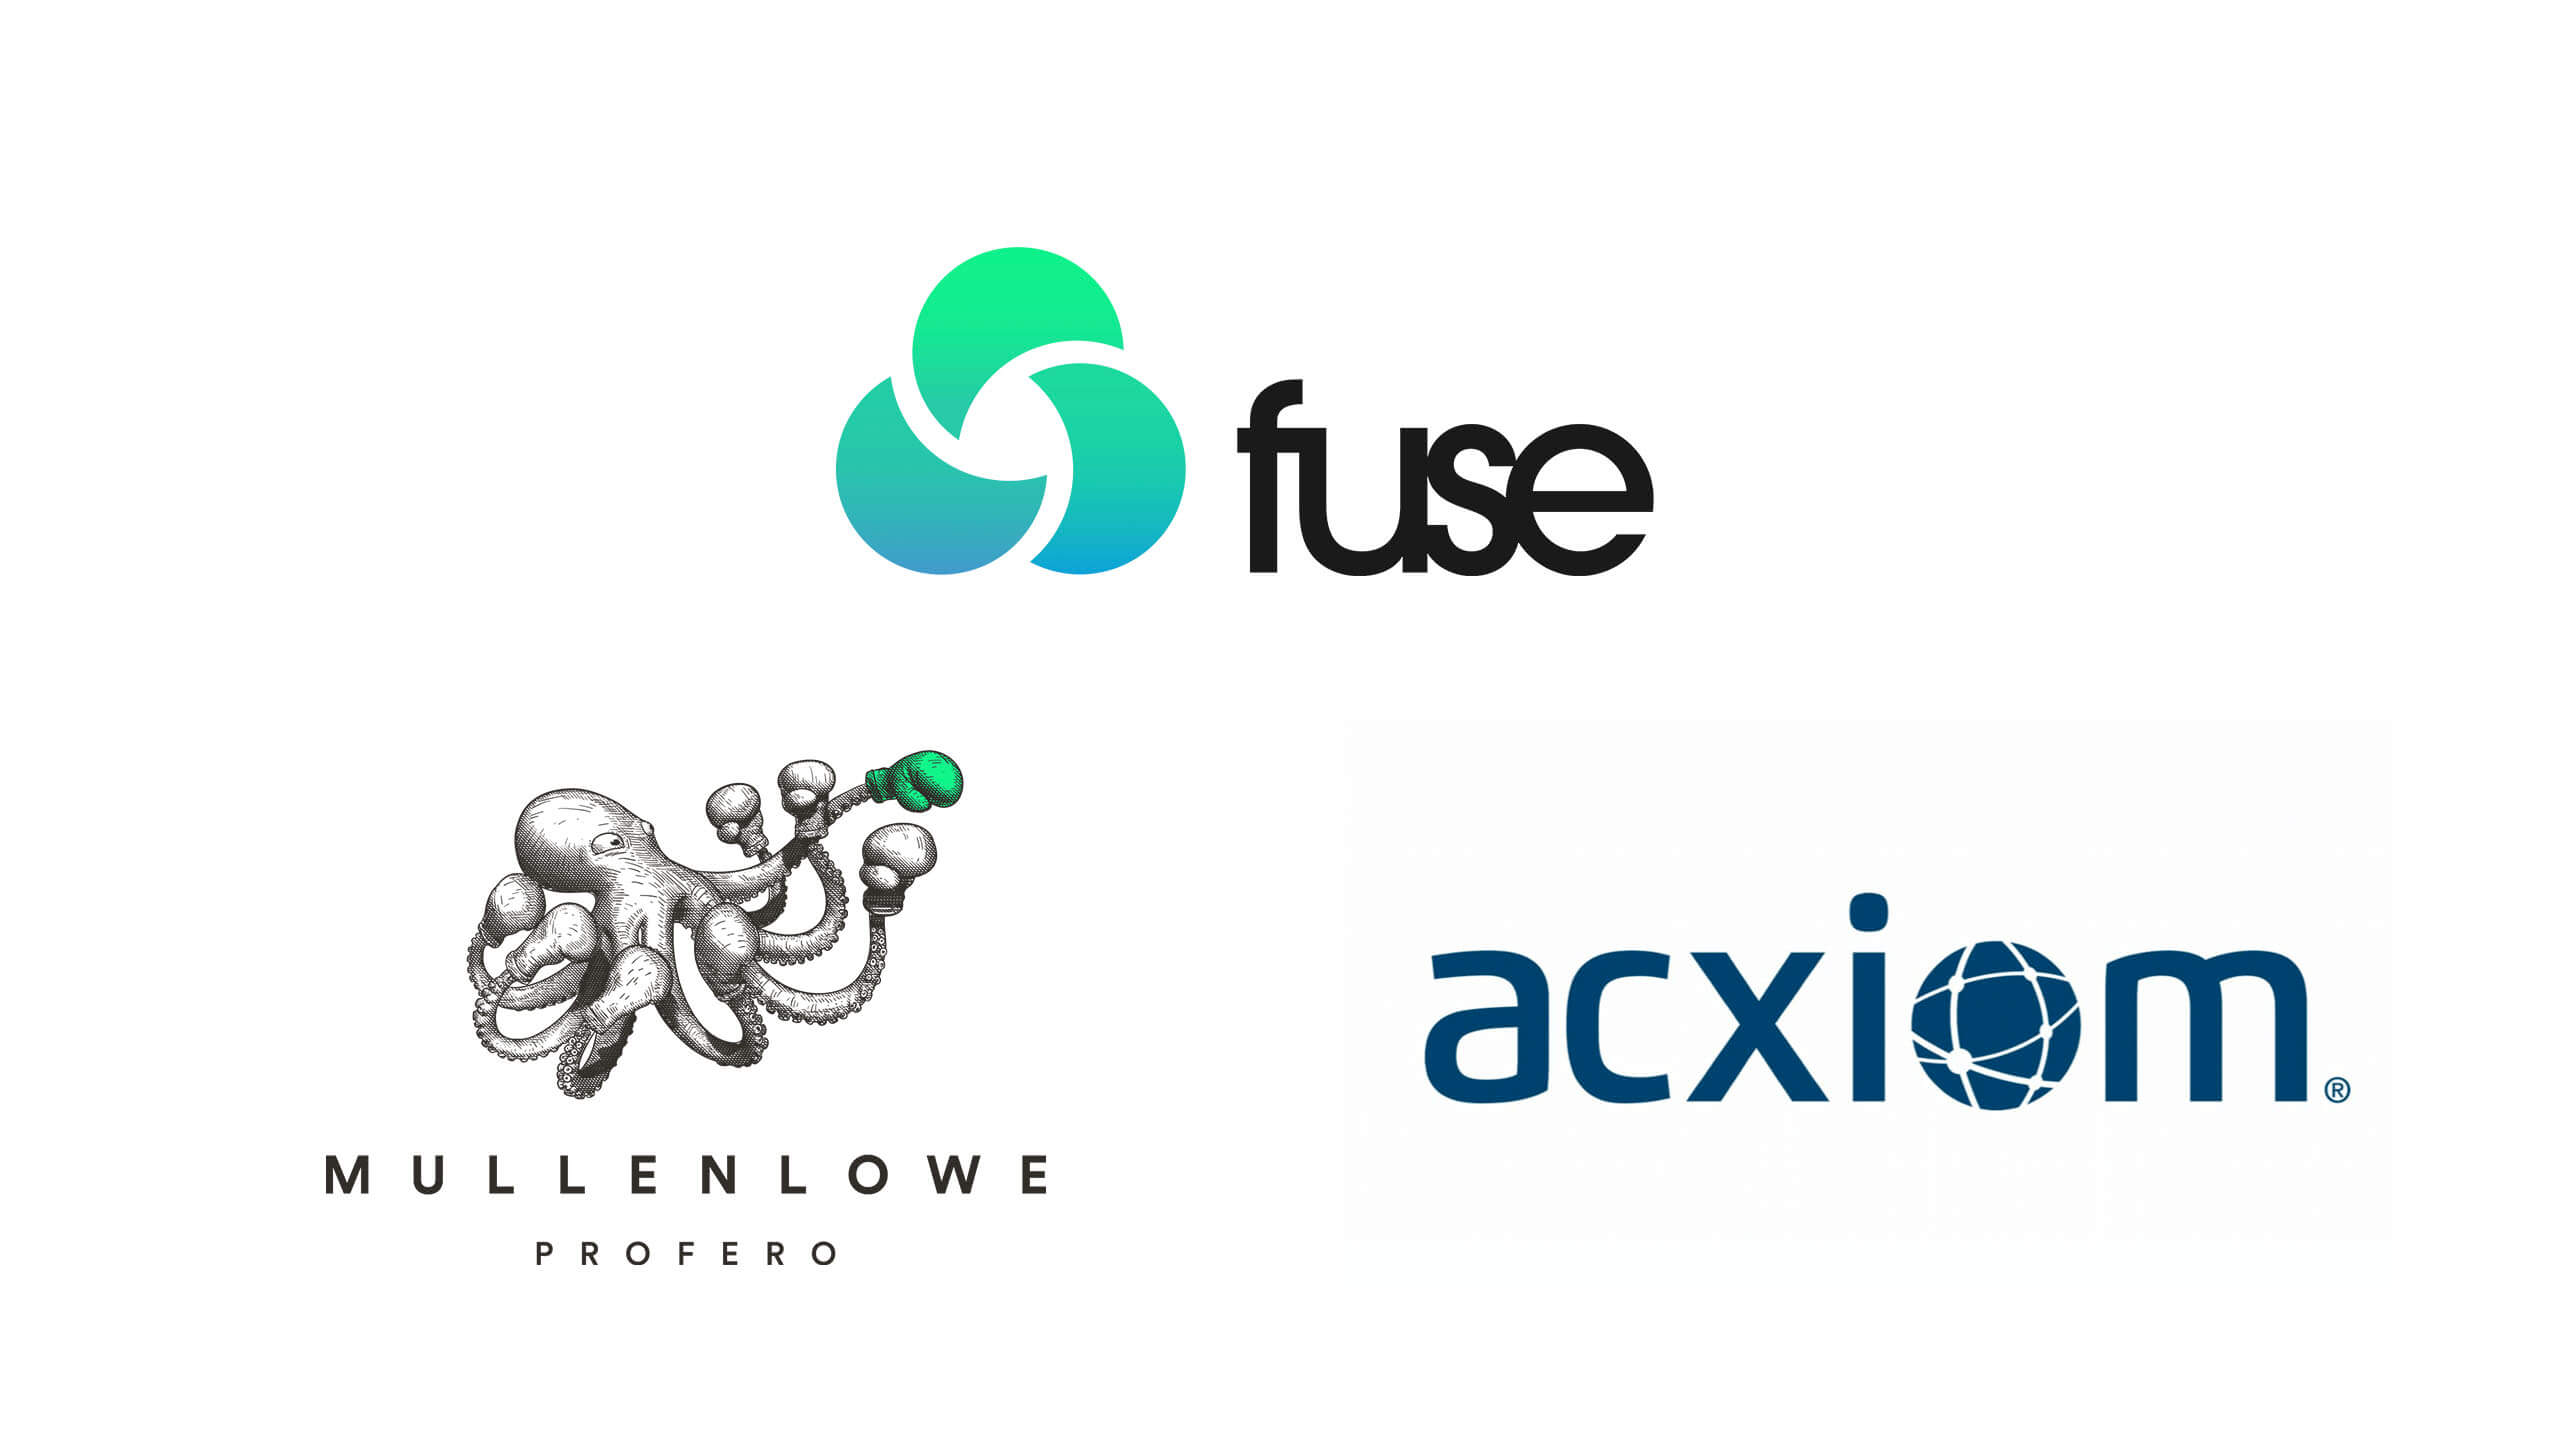 <strong>FUSE</strong> - The Owned Channel Personalisation Solution